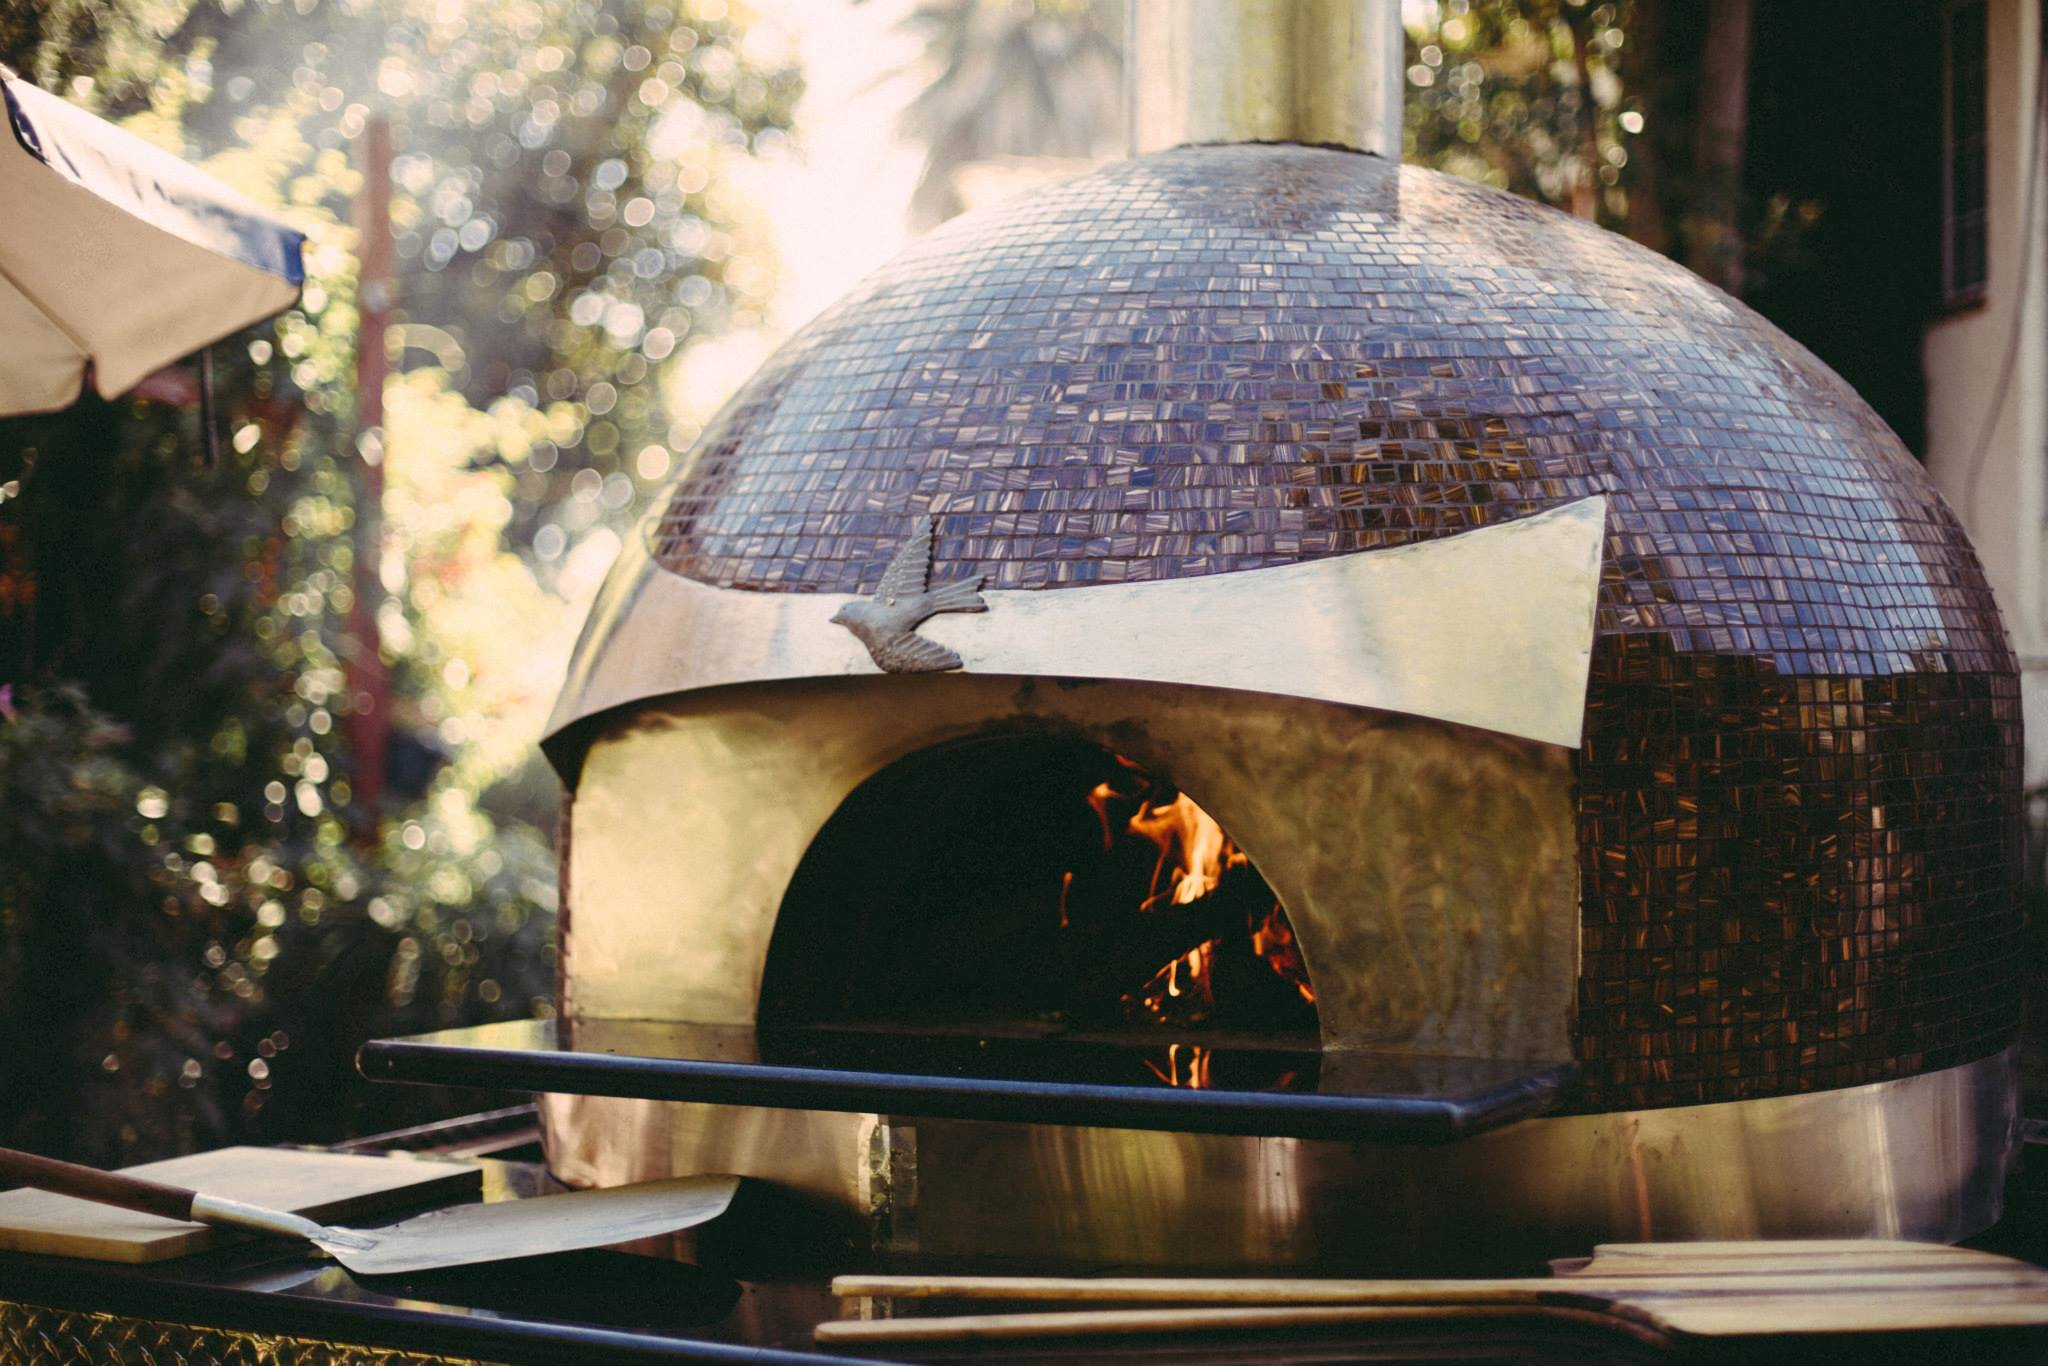 Glass tiled pizza oven made by Forno Piombo in Napa, CA